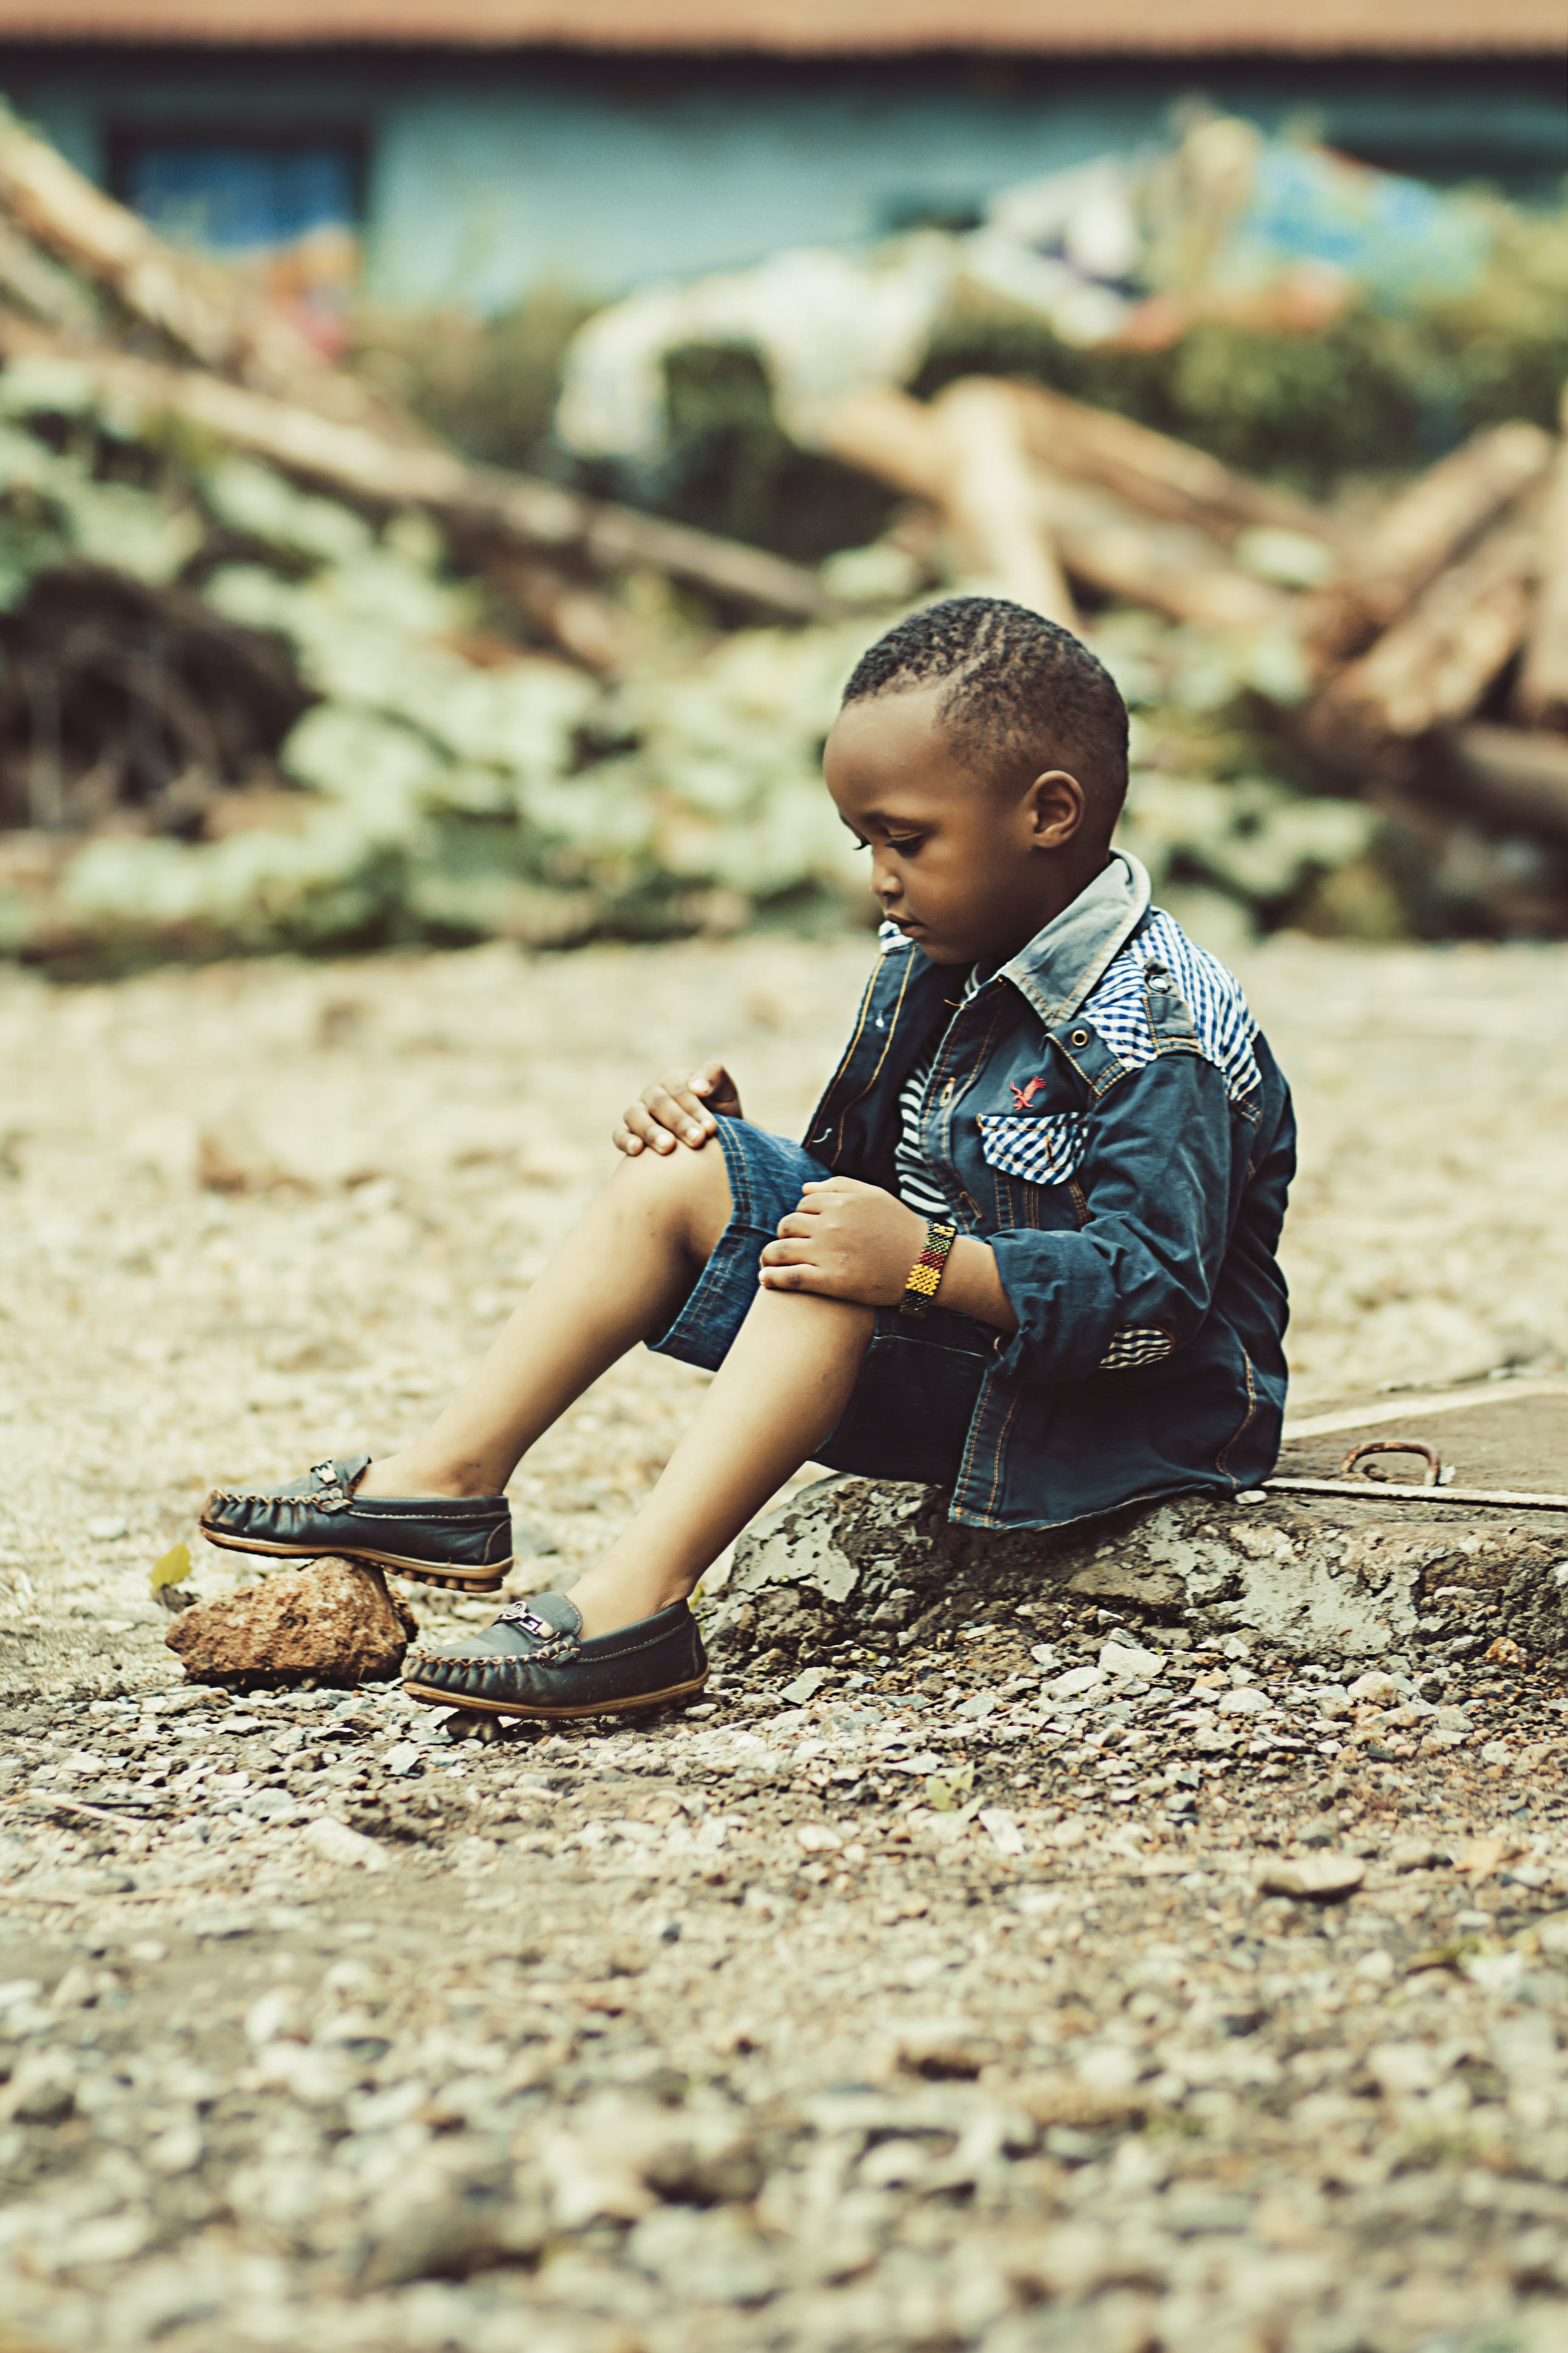 Boy Wearing Denim Jacket and Shorts With Pair of Shoes